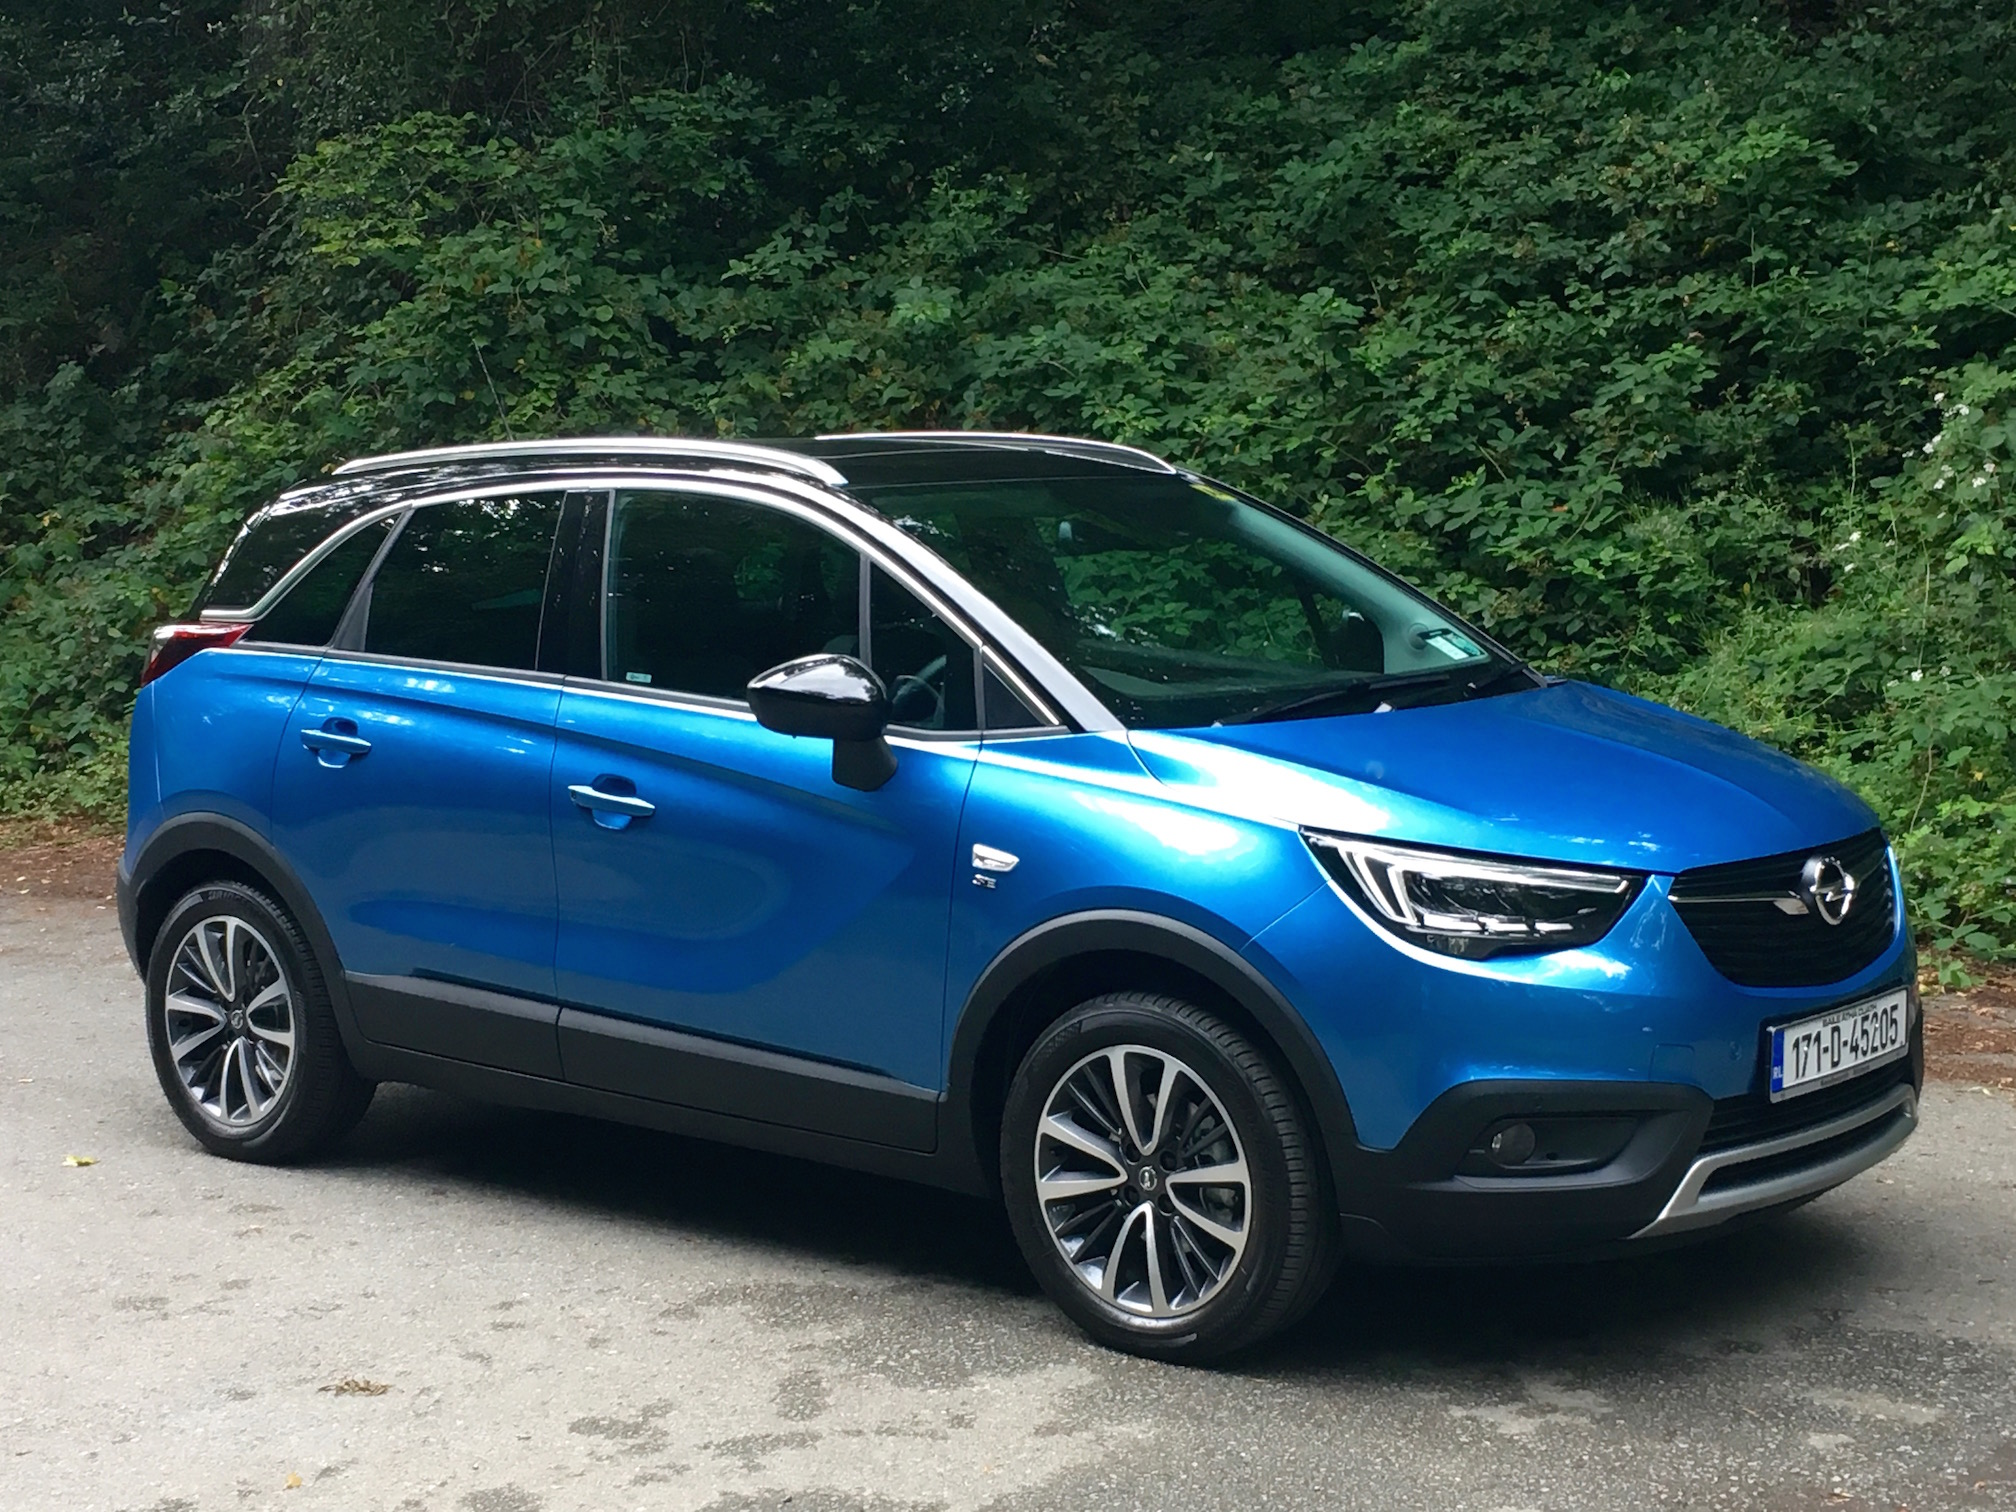 New Honda Suv >> Opel Crossland X review